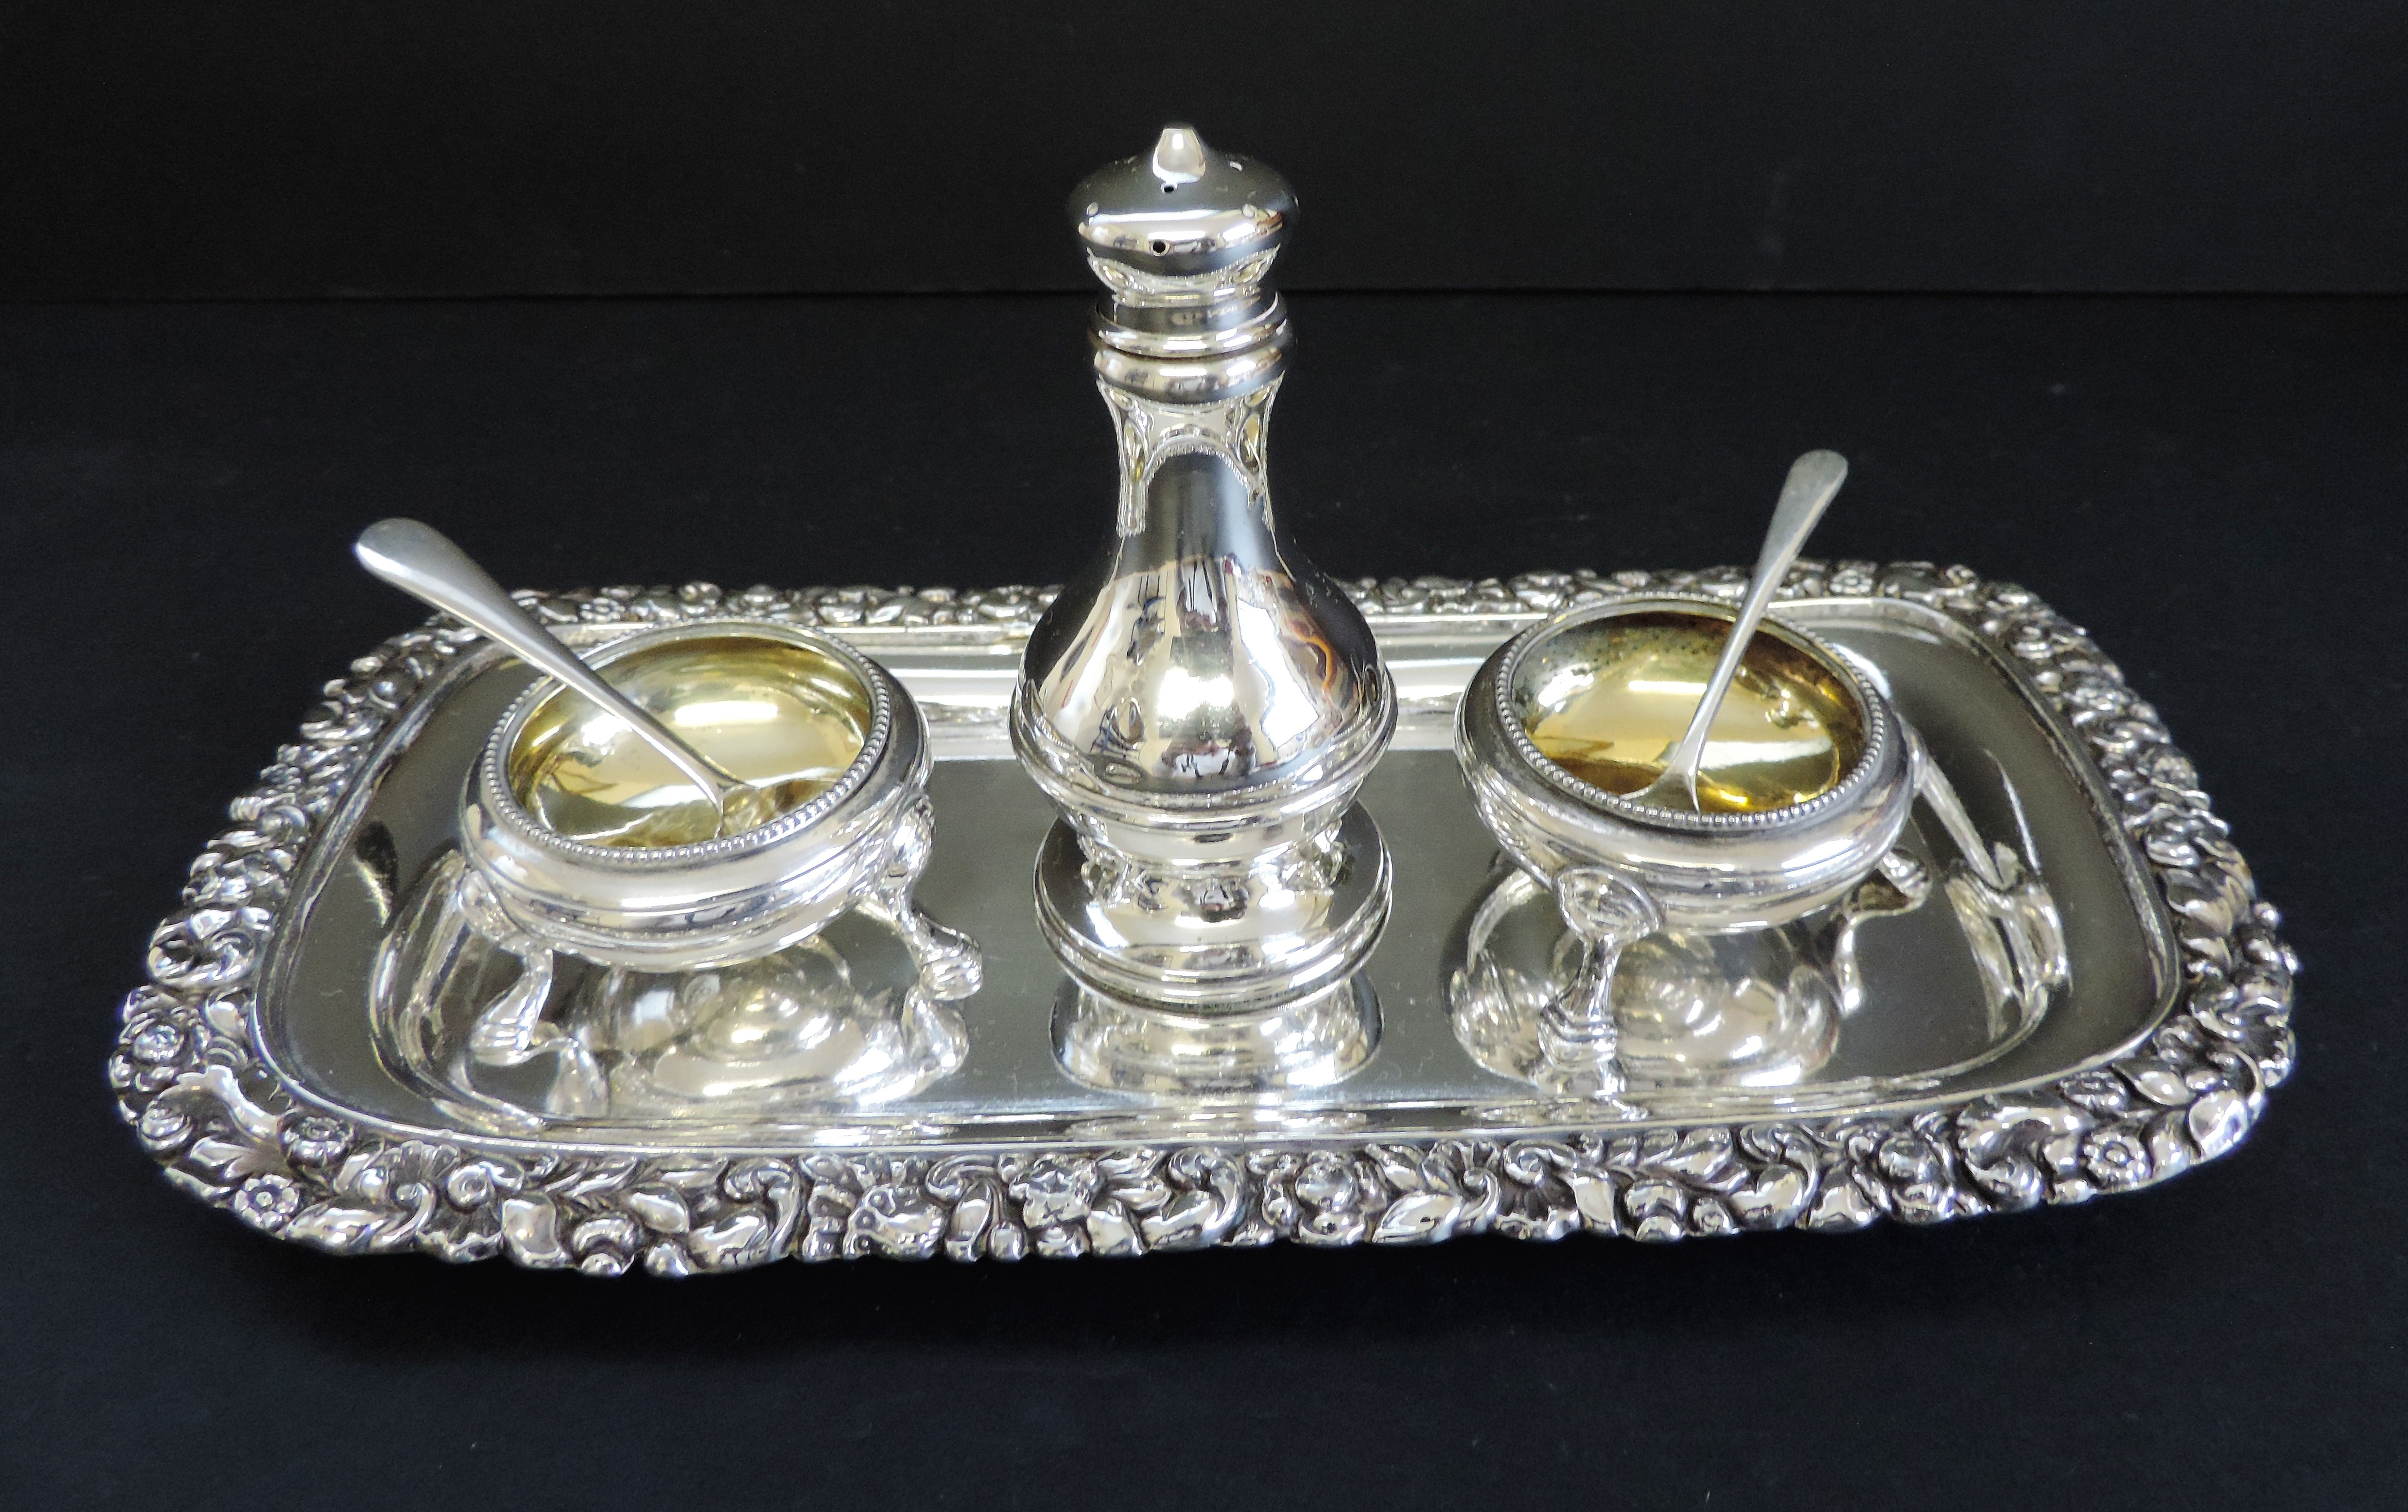 Antique Silver Plated 6 Piece Condiment Set - Image 4 of 5